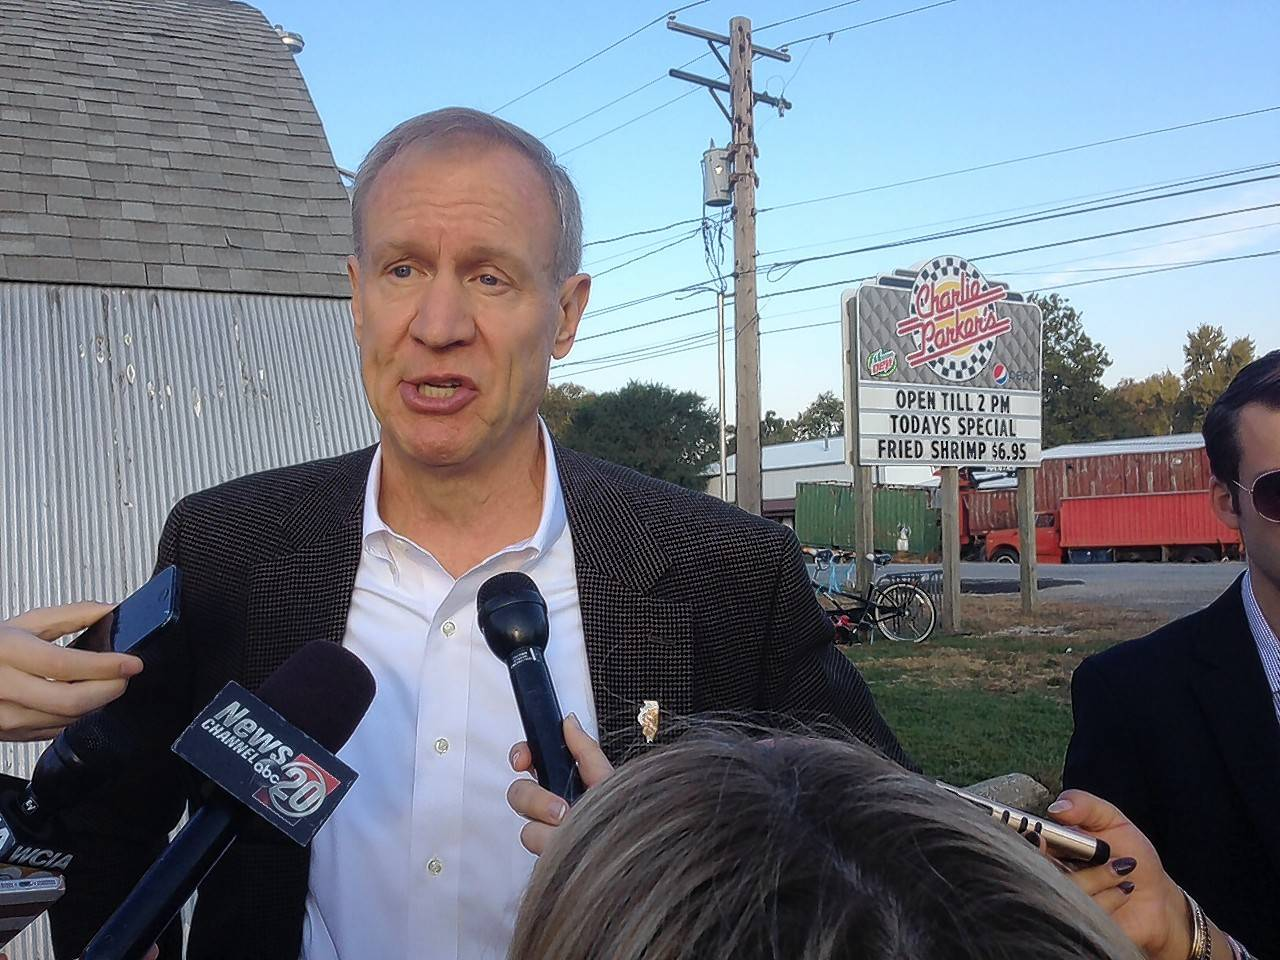 Gov. Bruce Rauner, during an event at a Springfield diner, responded to criticism from former Republican governors.